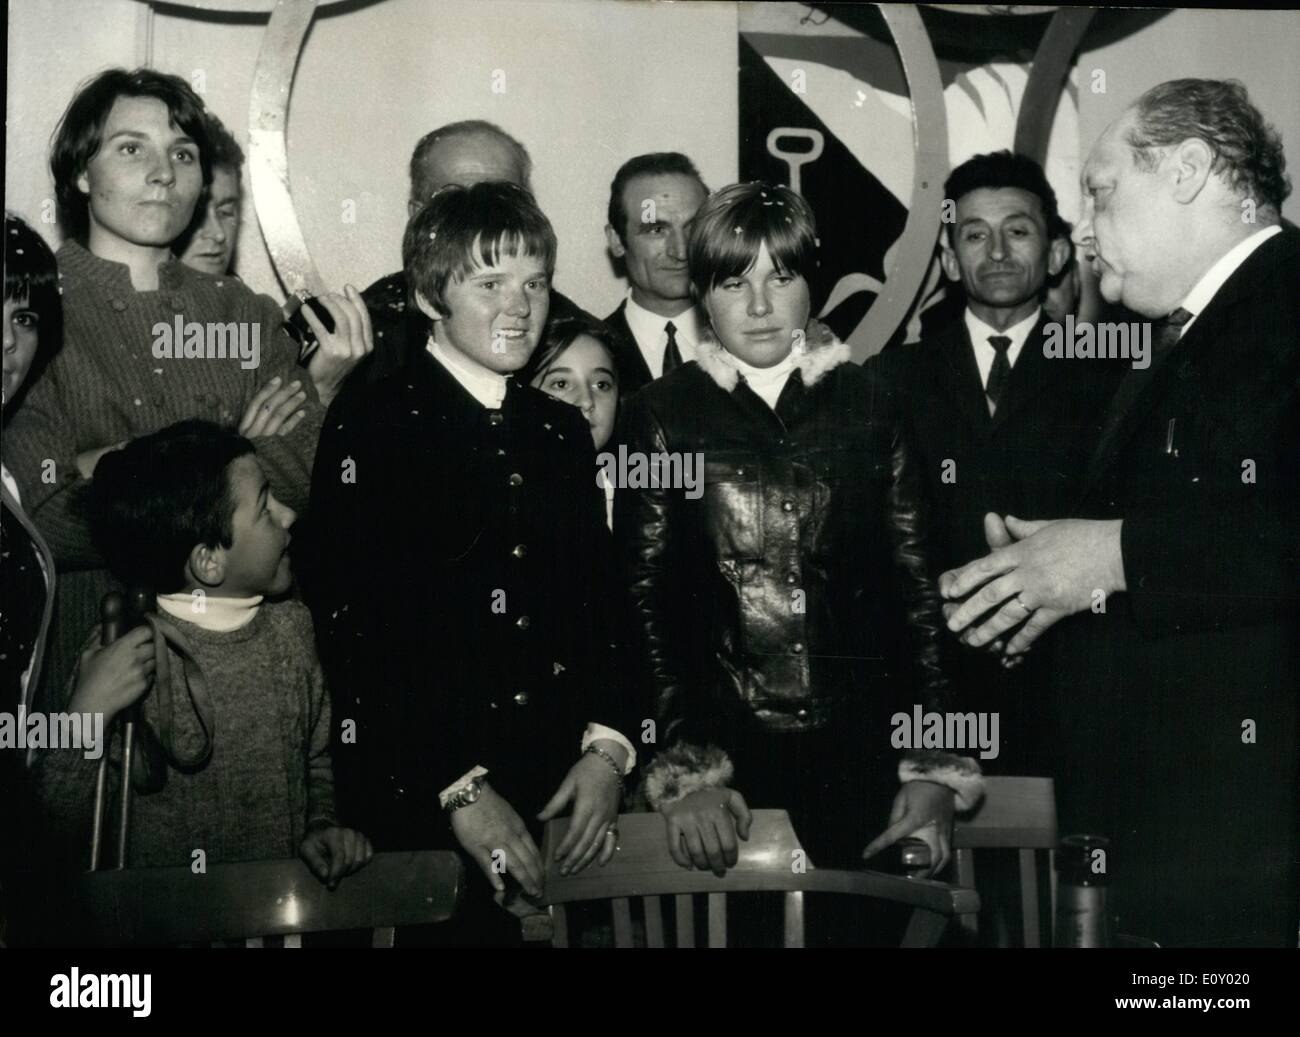 Apr. 04, 1968 - Girl skiers back home: roaring welcome in Pyrenees Villages.: Isabelle Mire and her teammate who took part in the recent ski Competitions in America. Were given a roaring welcome at Lannemezan, Isabelle mi 4s native town in the French Pyrenees. Photo shows during the official reception from L. to R.: Annie Famose (half hidden), Christine Ebranger (Marielle Goittschel's sister), Isabelle Mir and Florence Steurer. - Stock Image